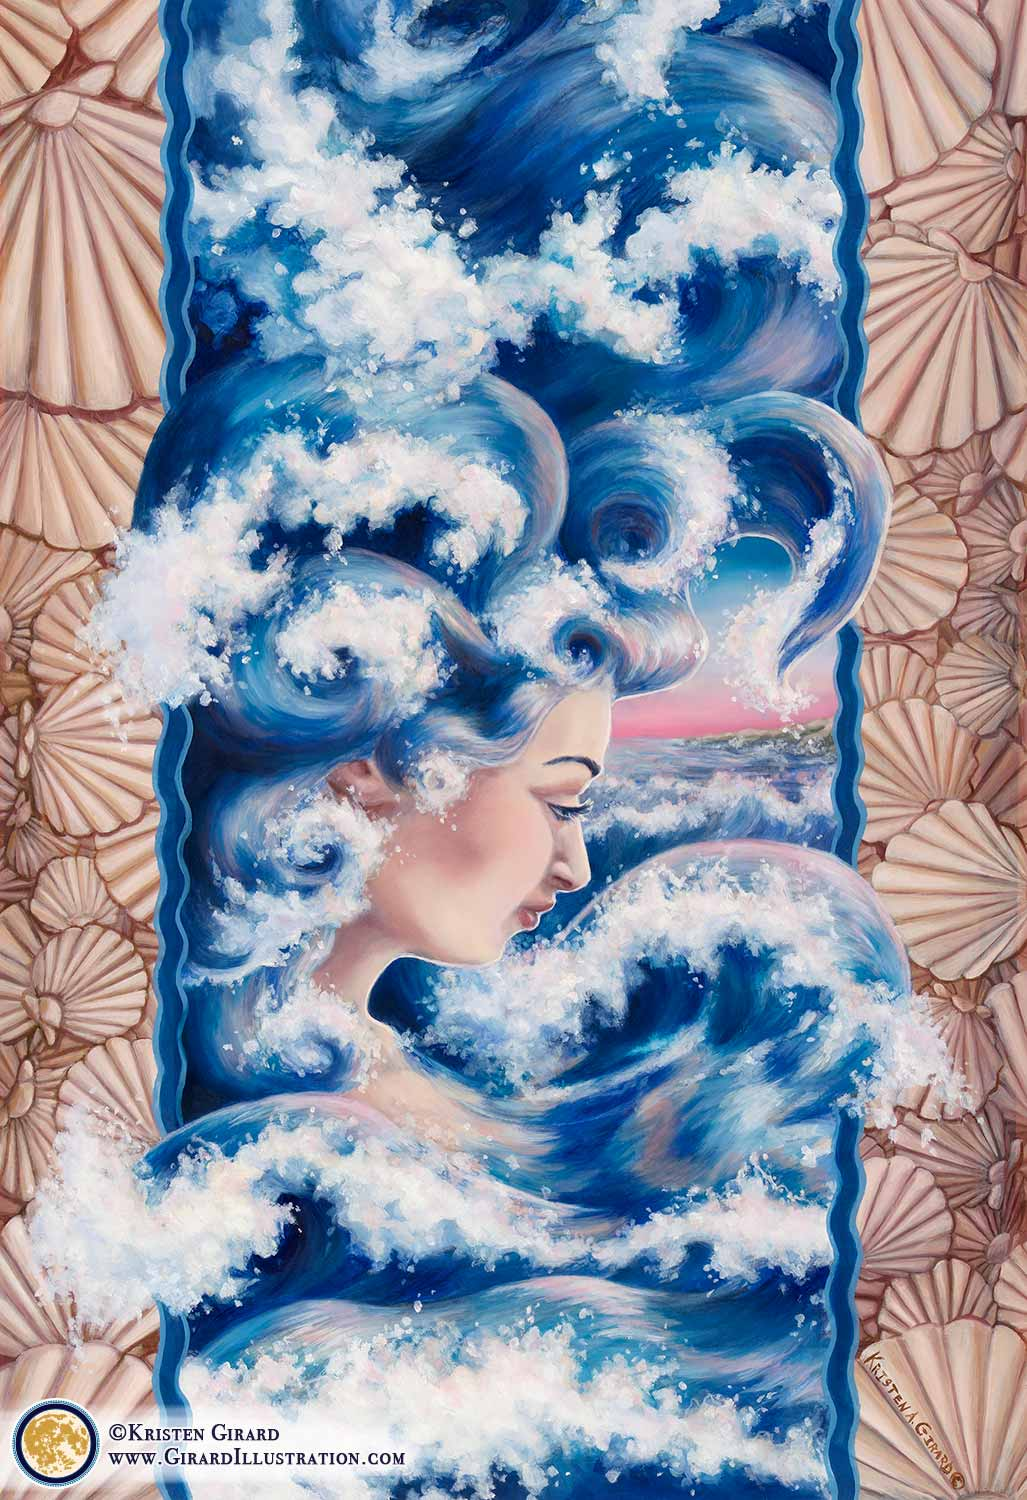 A young woman's hair turns into frothing blue and white ocean waves as she discovers her affinity for water. Artist Kristen Girard created unusually beautiful portraits of women discovering their strengths. © Kristen Girard